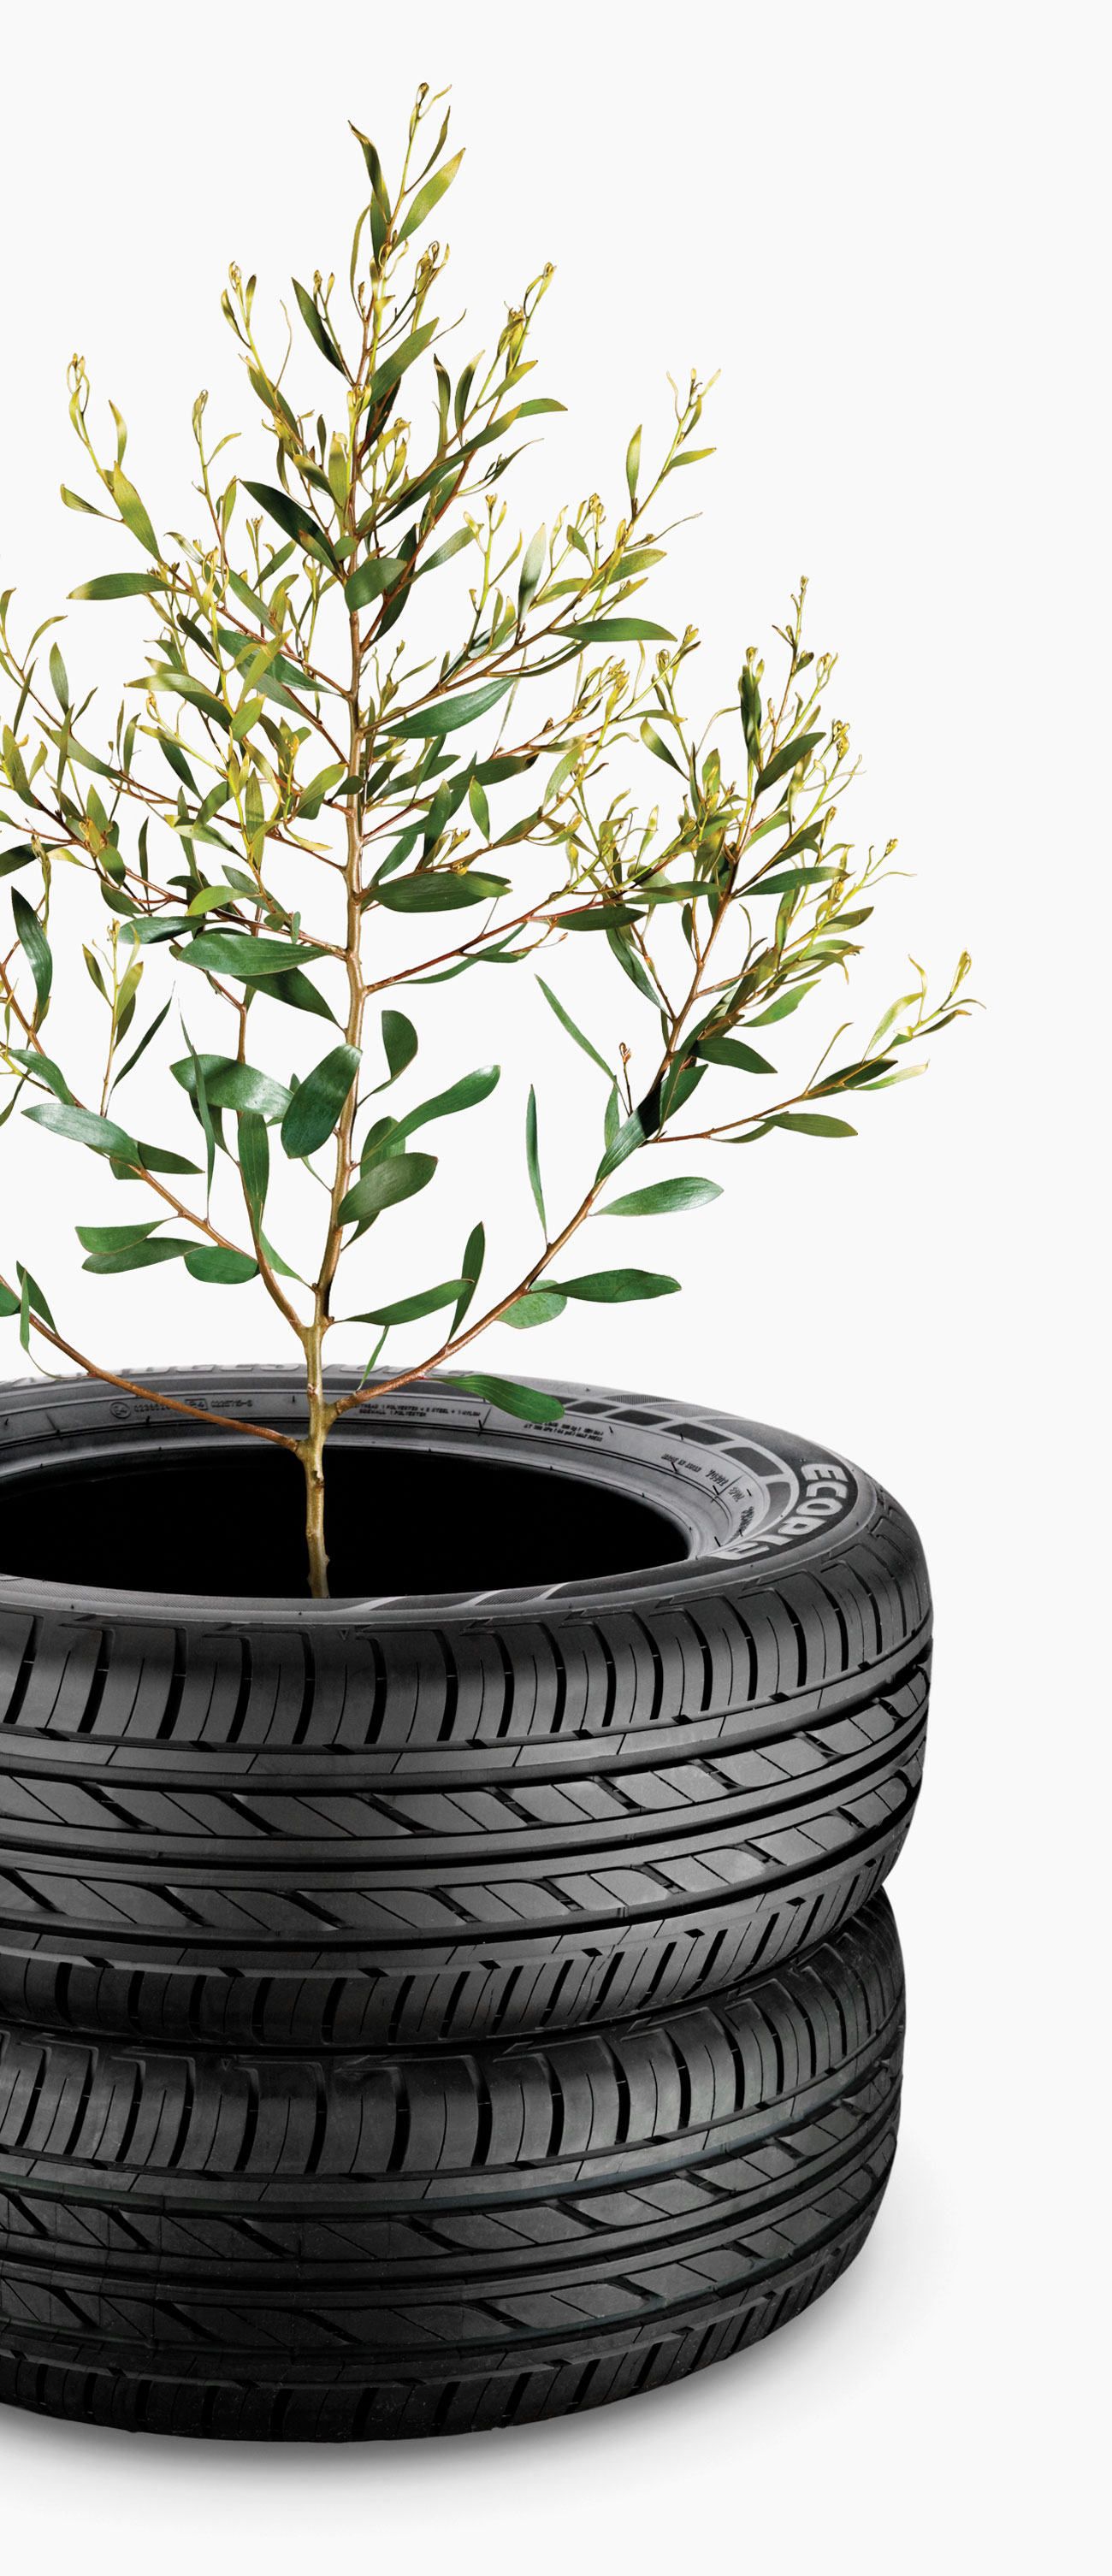 bridgestone-ecopia-tree